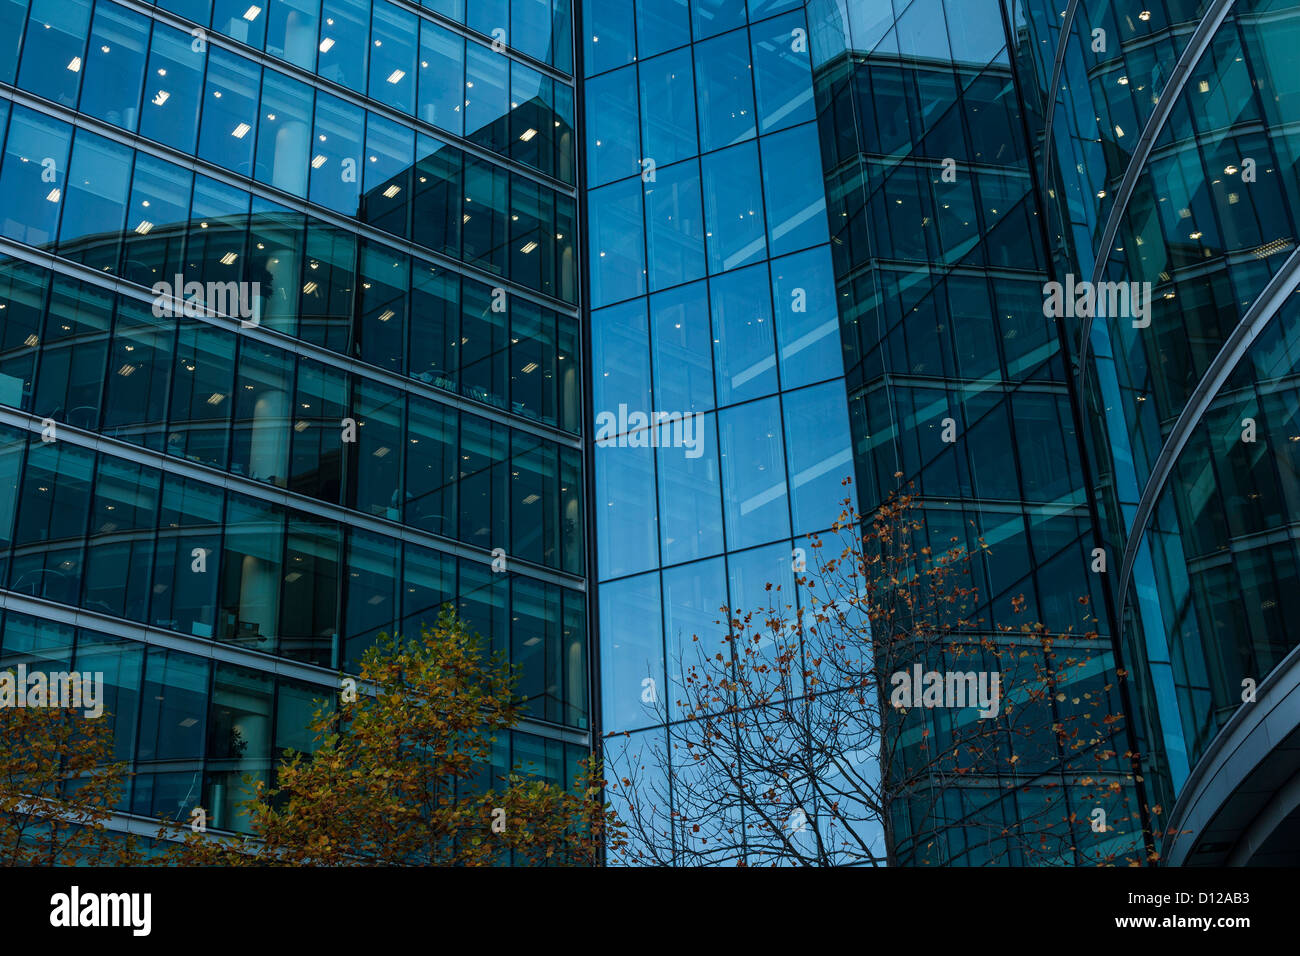 More London Offices, Glass Buildings, Architecture - Stock Image